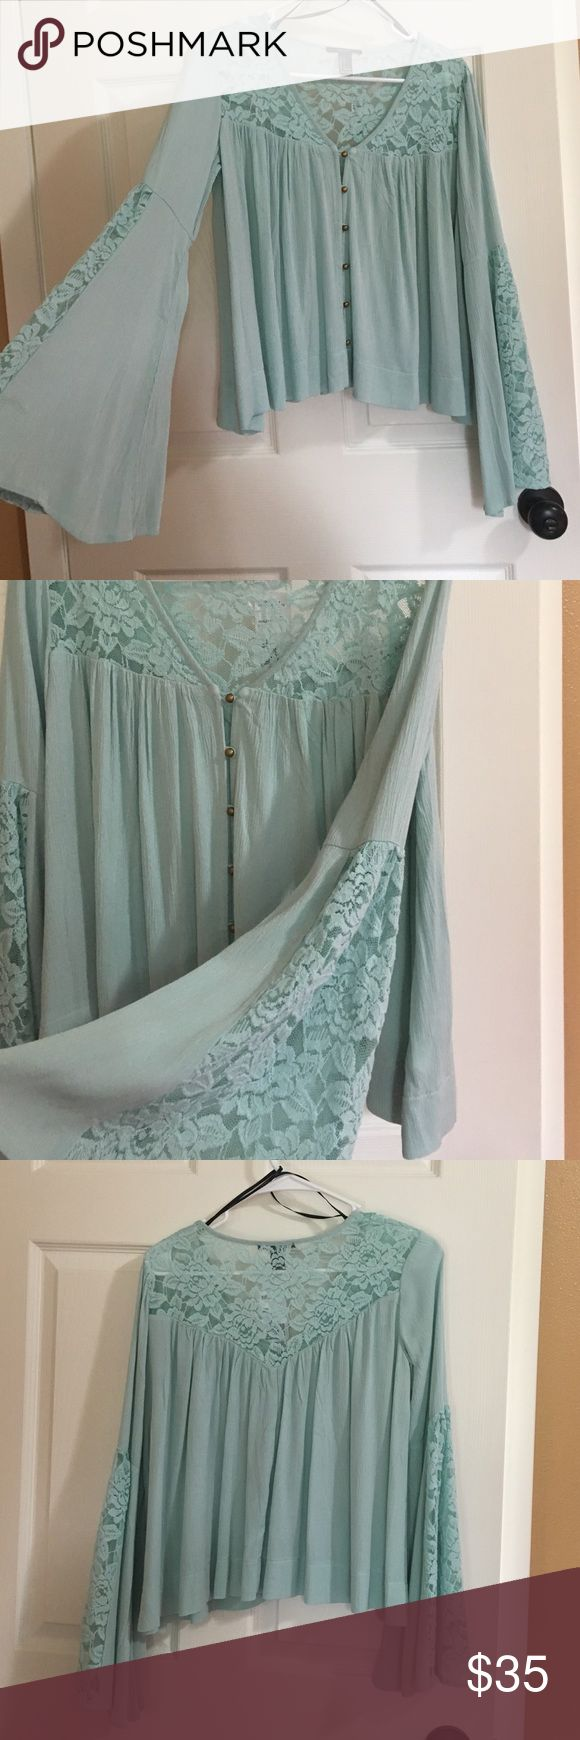 NEW BOHO LACE MINT TOP BELL SLEEVES Brand new. Beautiful BOHO TOP in mint. Fits XS and small and medium. Stretchy meant to fit loose. Beautiful LACE design on chest back and sleeves. Retails $45. Price firm. Posh takes a fee. Liquidation prices reflected 🎁☺️ ships fast! 5 star seller! Not fp but same quality. ☺️🎁 Free People Tops